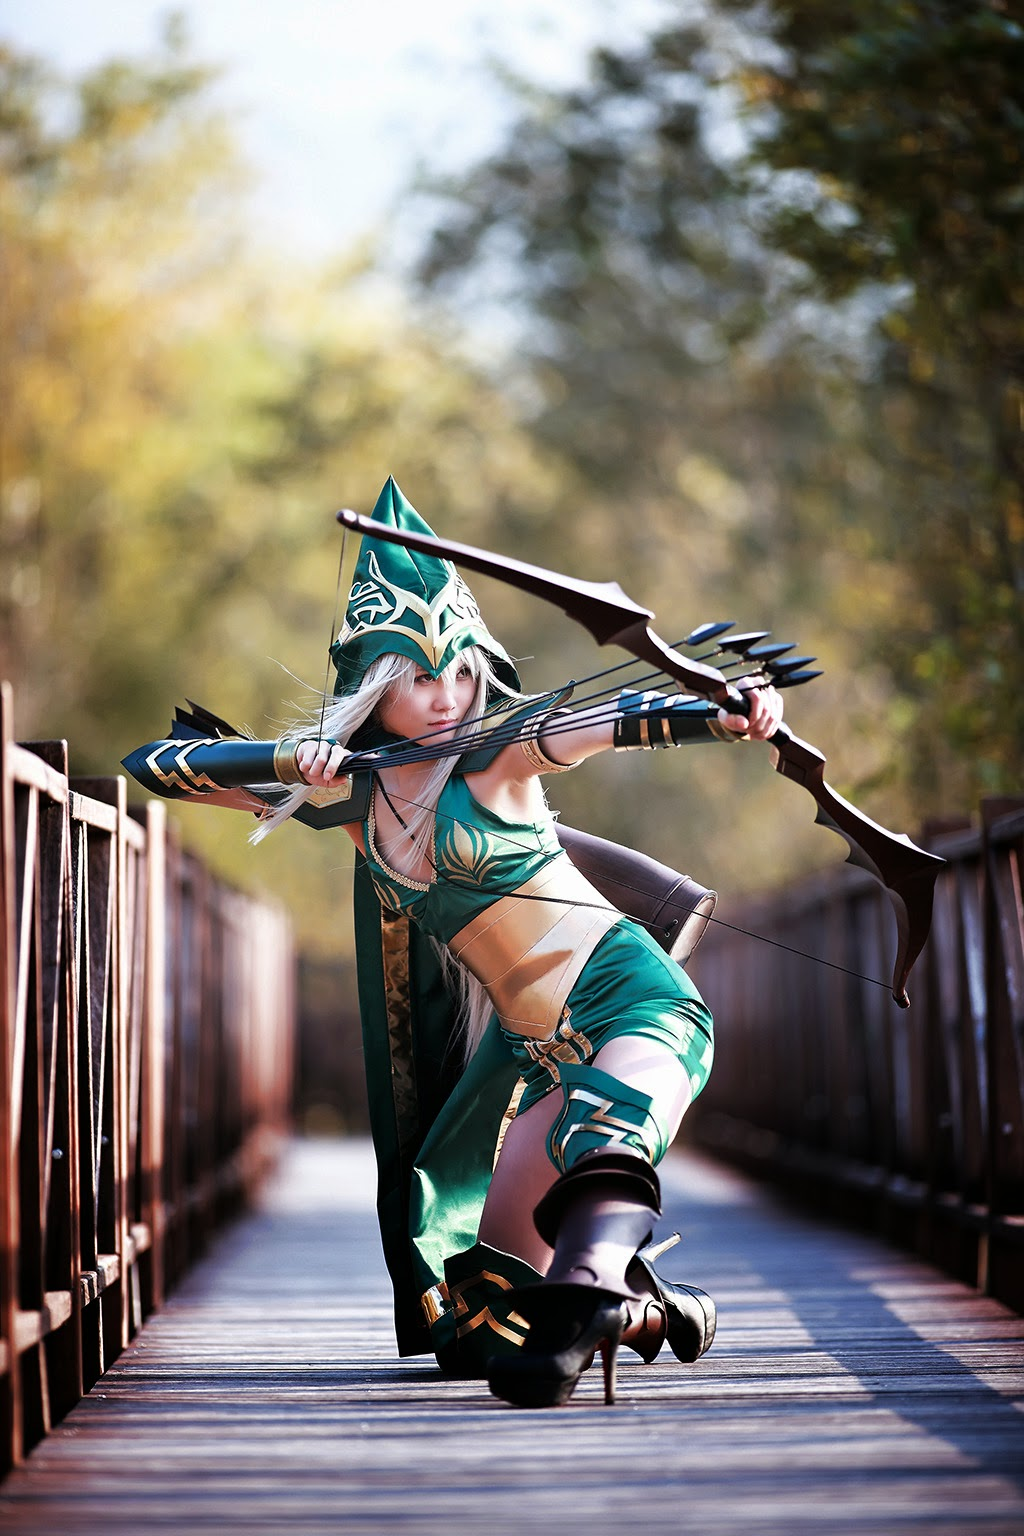 Ashe-League-of-Legends-Cosplay-Infographic-BLOG-3